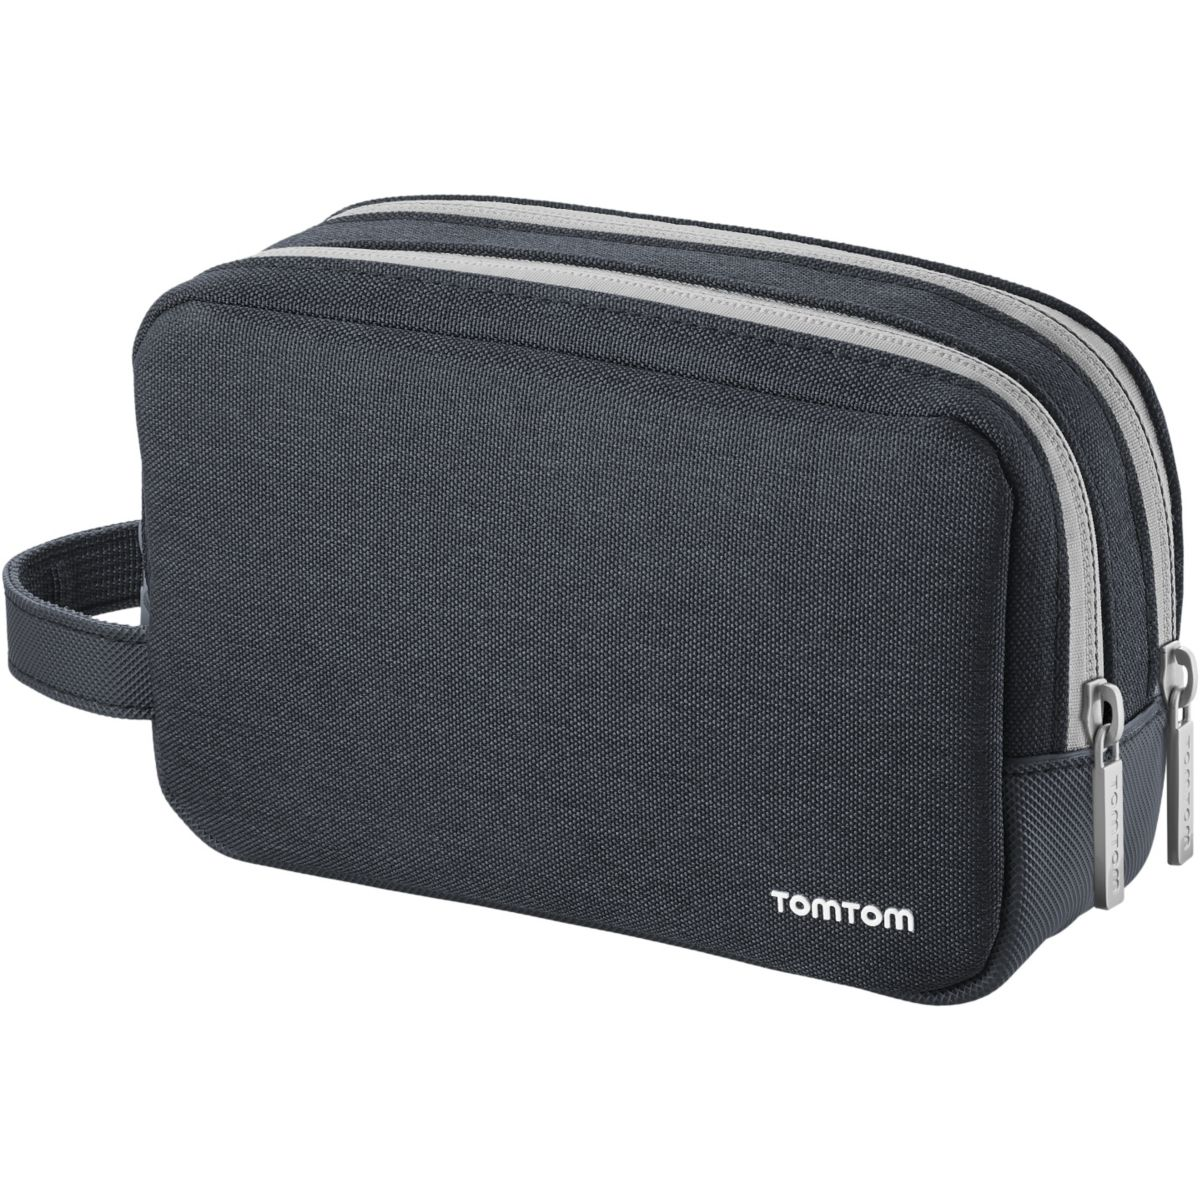 Housse TOMTOM de transport universelle